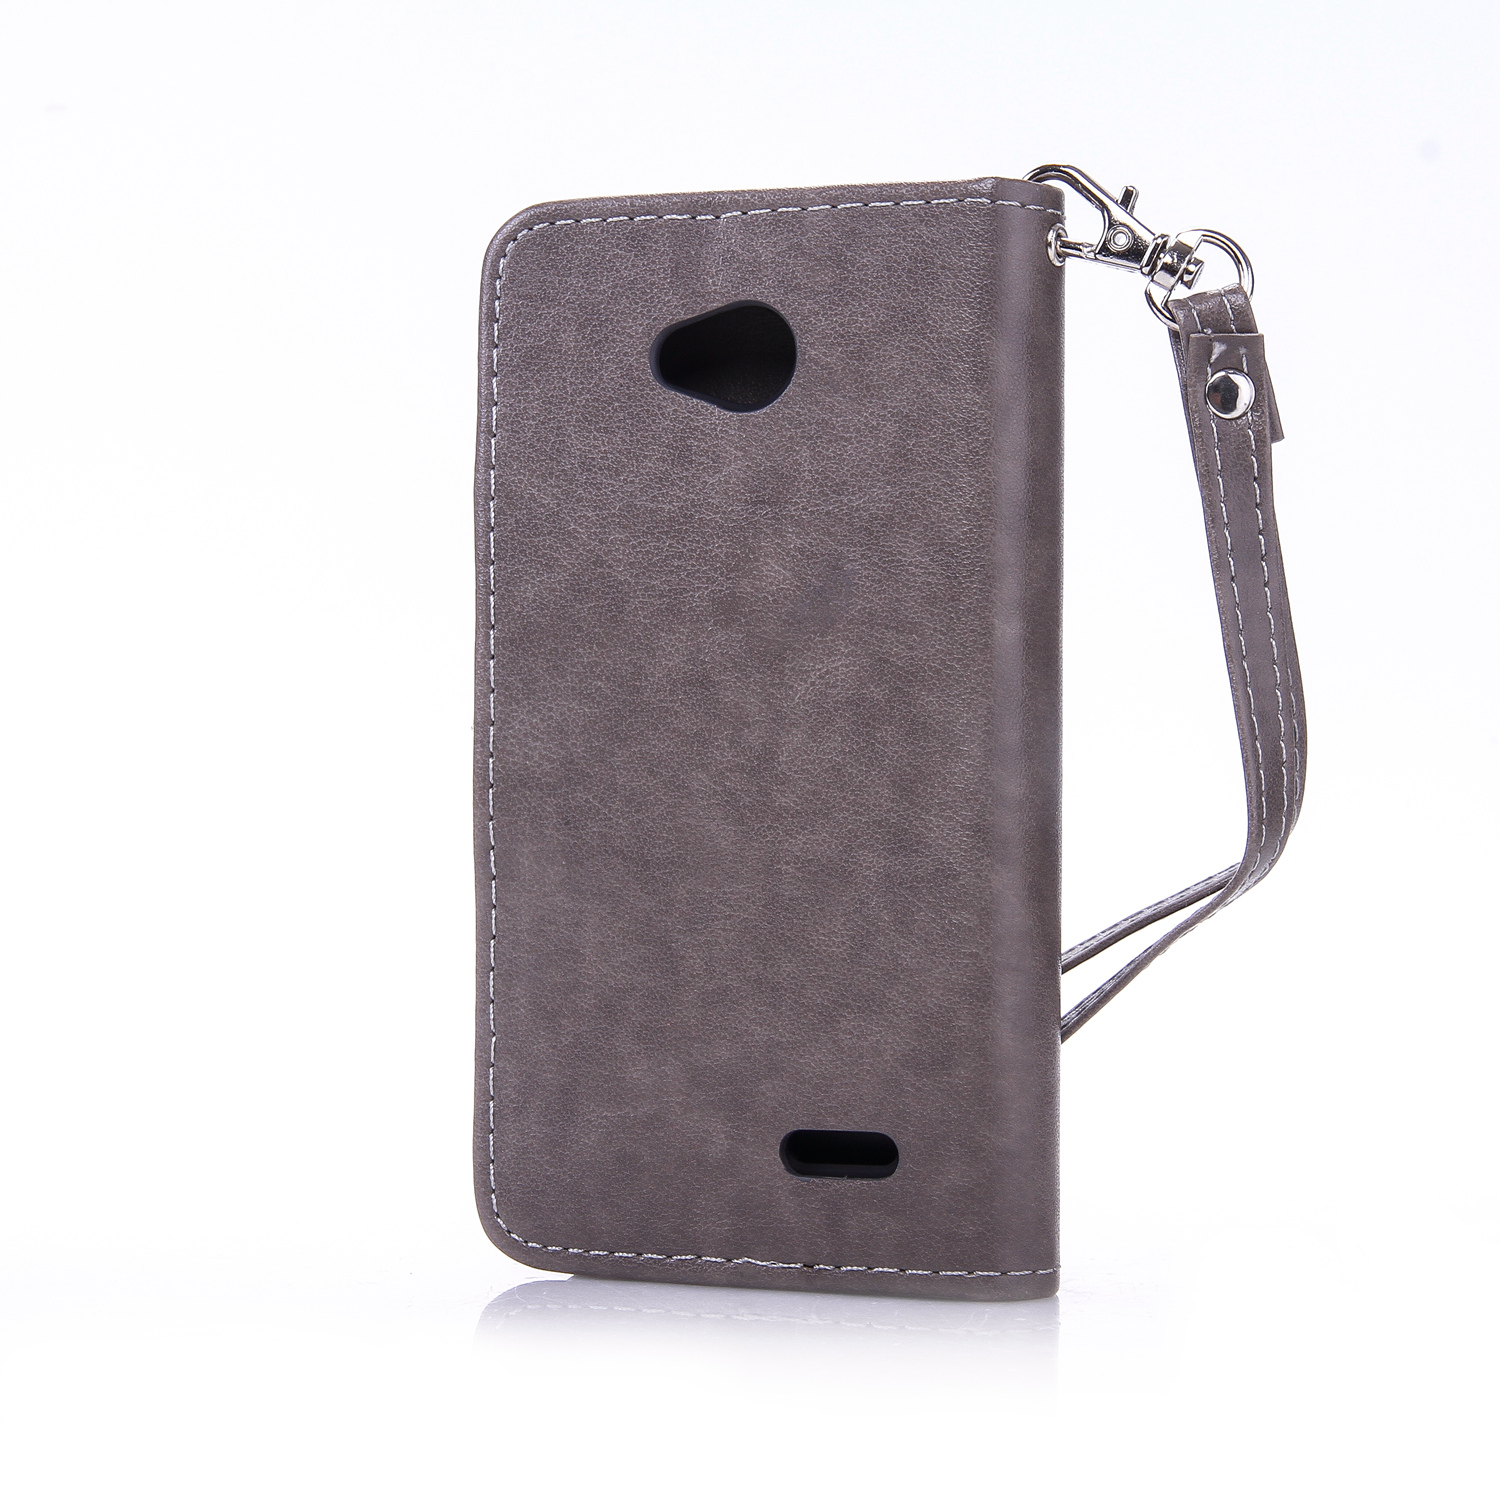 Case for LG L70 L 70 Dual D325 D315 D320n D 325 315 320n Flip Case Phone Leather Cover for LG L65 L 65 D285 D280n D 285 280n